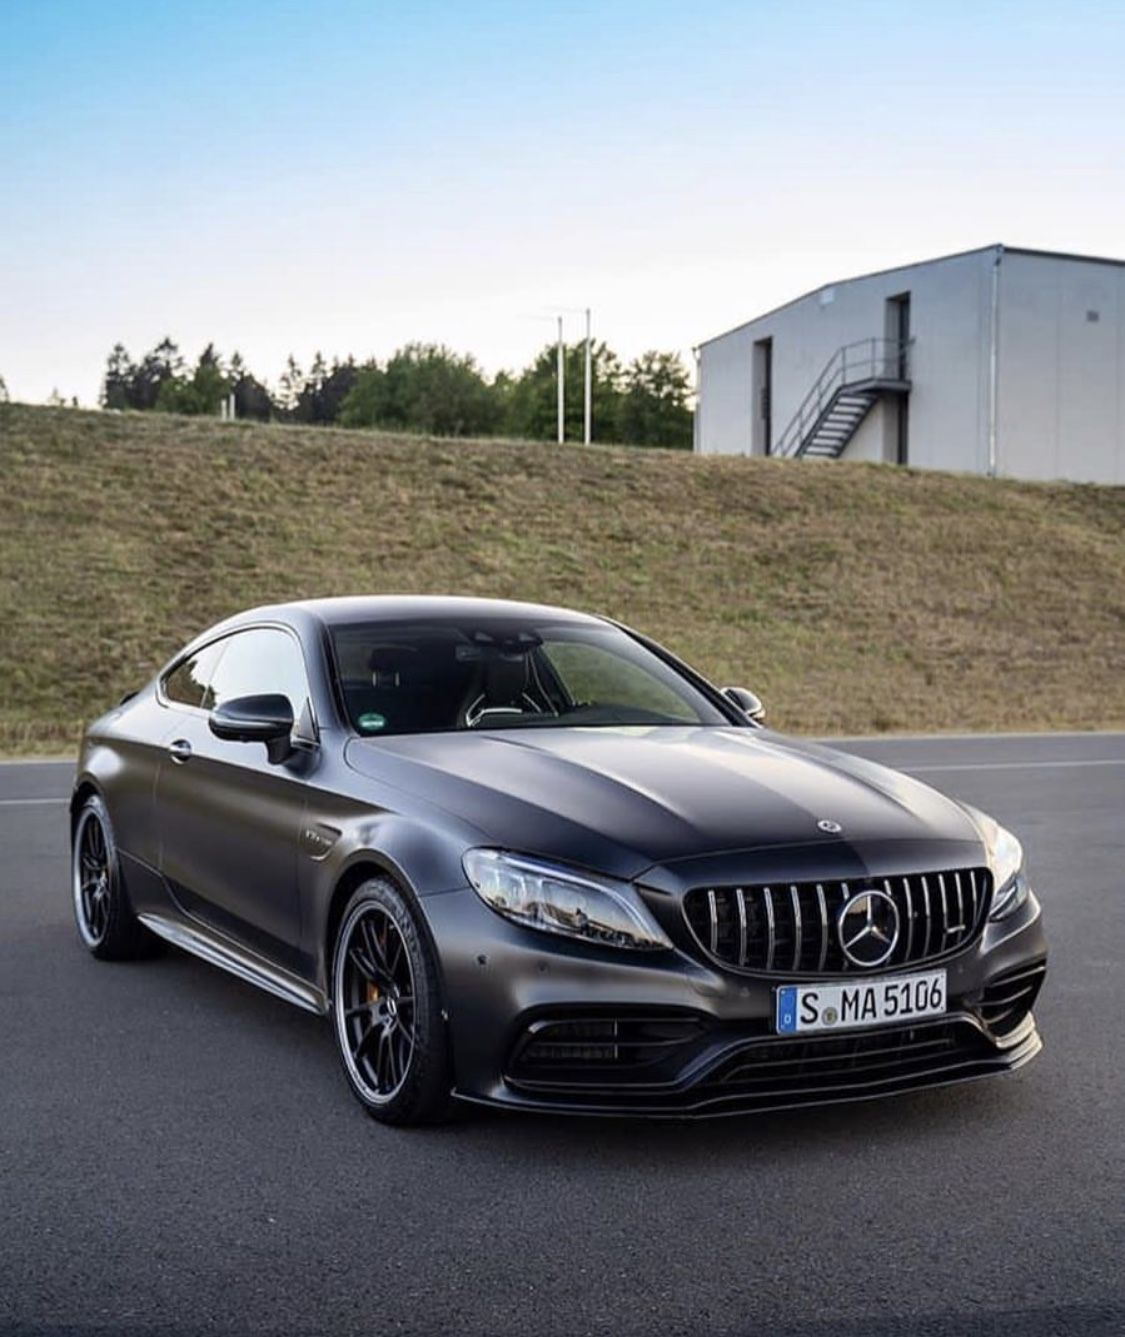 Pin By Josh H On Stuff In 2020 Mercedes Coupe Mercedes Benz